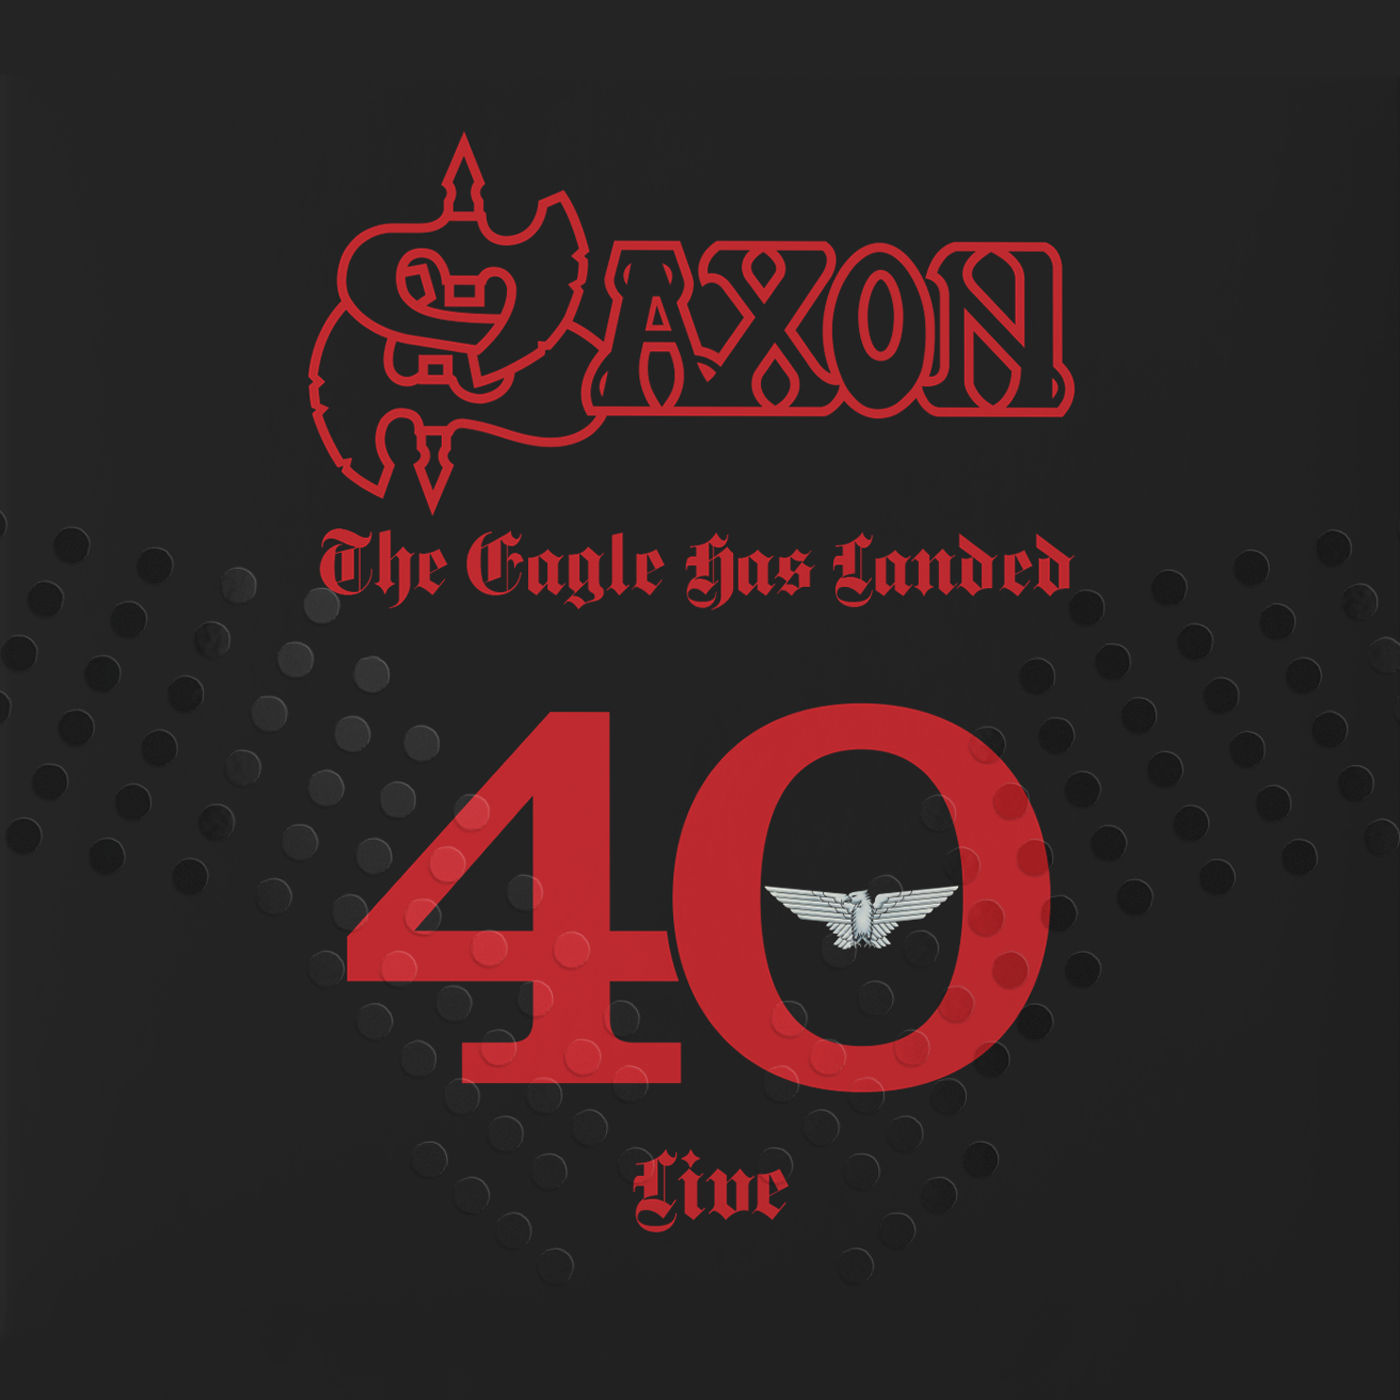 Saxon - The Eagle Has Landed 40 (2019)